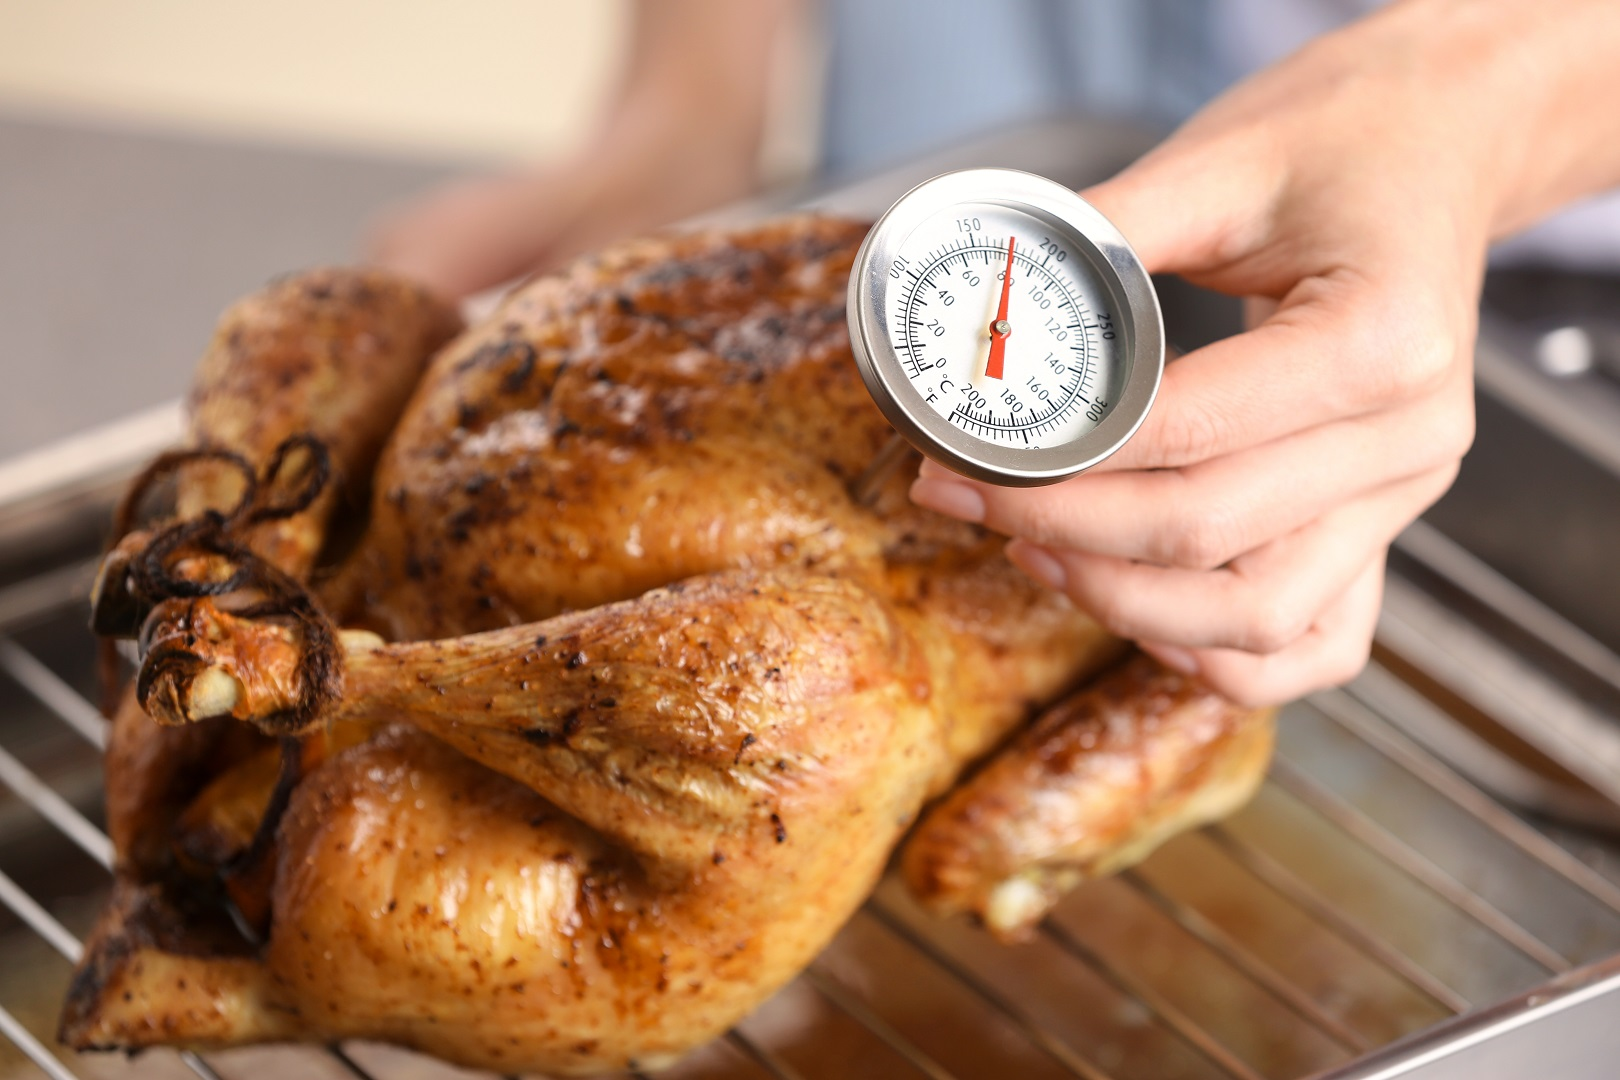 Roasted Turkey With Food Thermometer Check Temperature